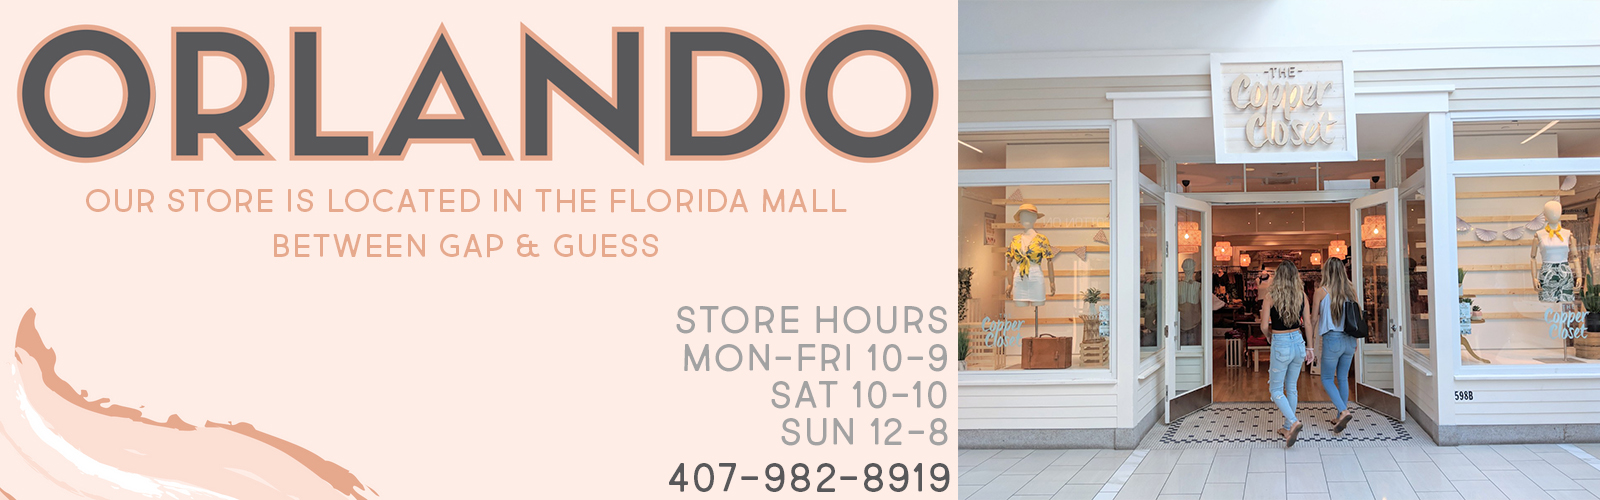 The Copper Closet Orlando. Our store is located in the Florida mall between GAP & Guess. Store hours are Monday through Friday from 10am to 9pm and Saturday from 10am to 10pm and Sunday noon to 8pm. Our Orlando location can be reached at 407-982-8919.